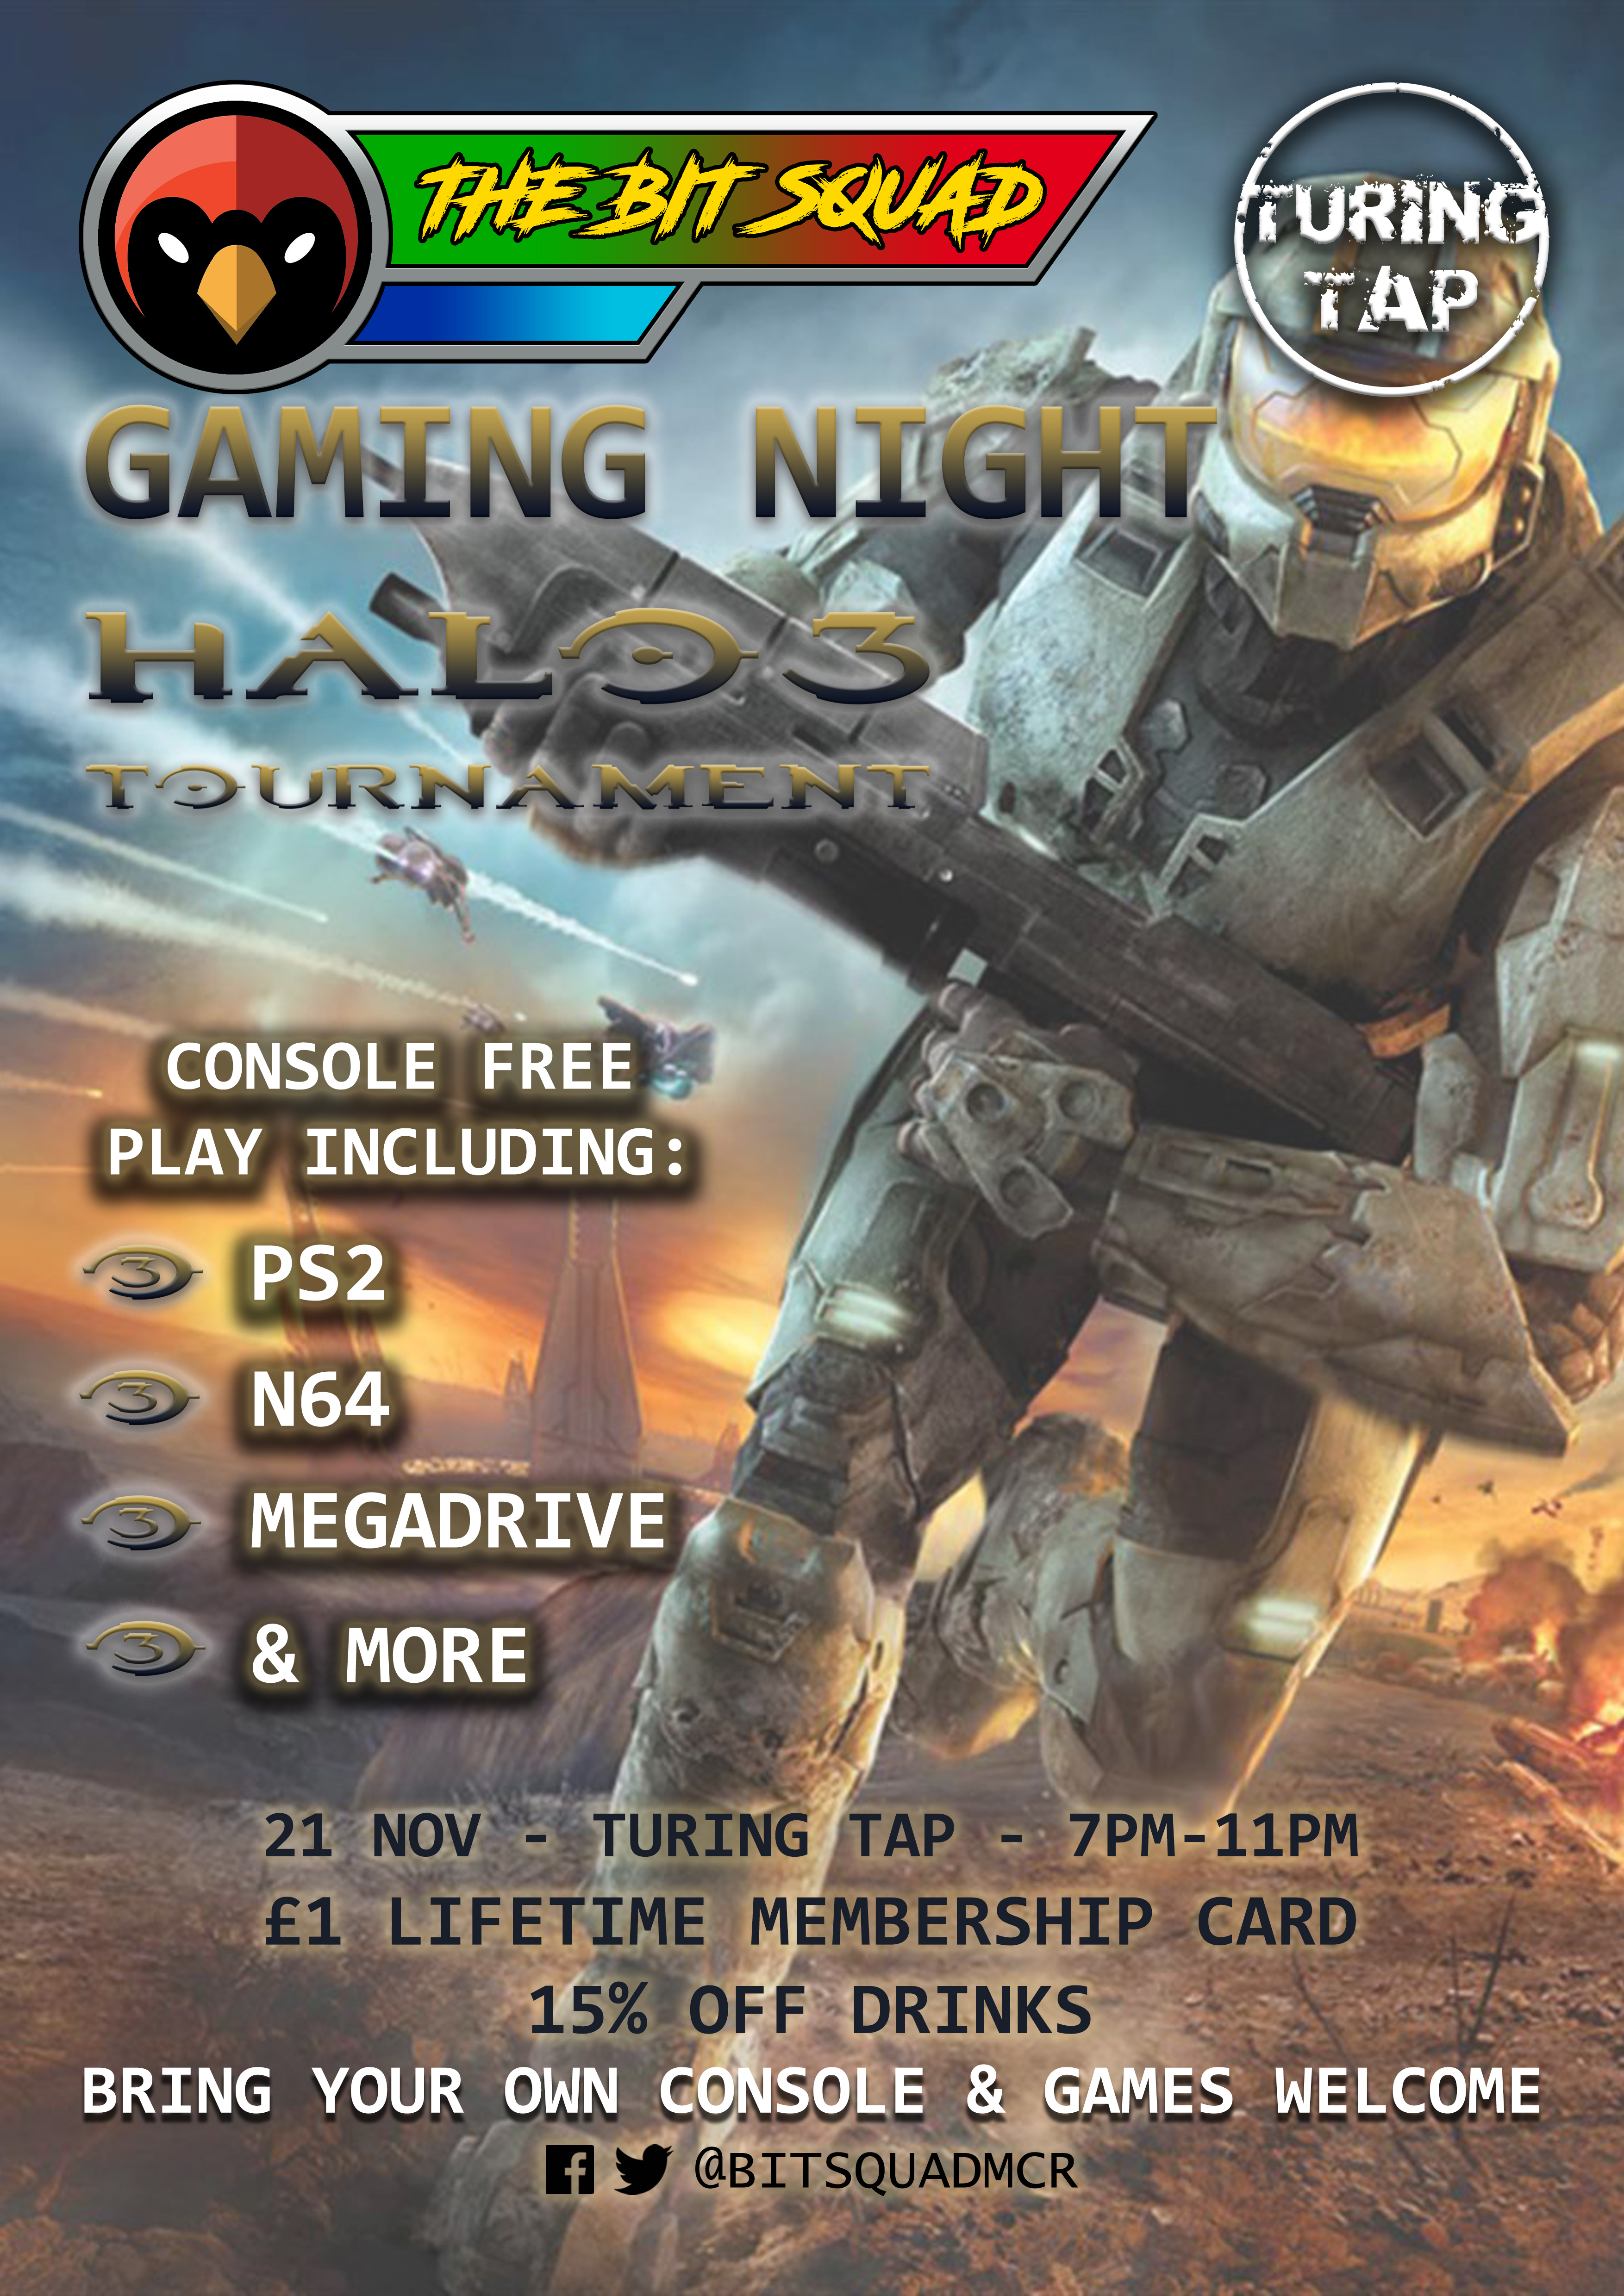 The Bit Squad - Manchester Gaming Night - Turing Tap - 21 Nov 19 - Halo 3 Poster - Red Cardinal Music